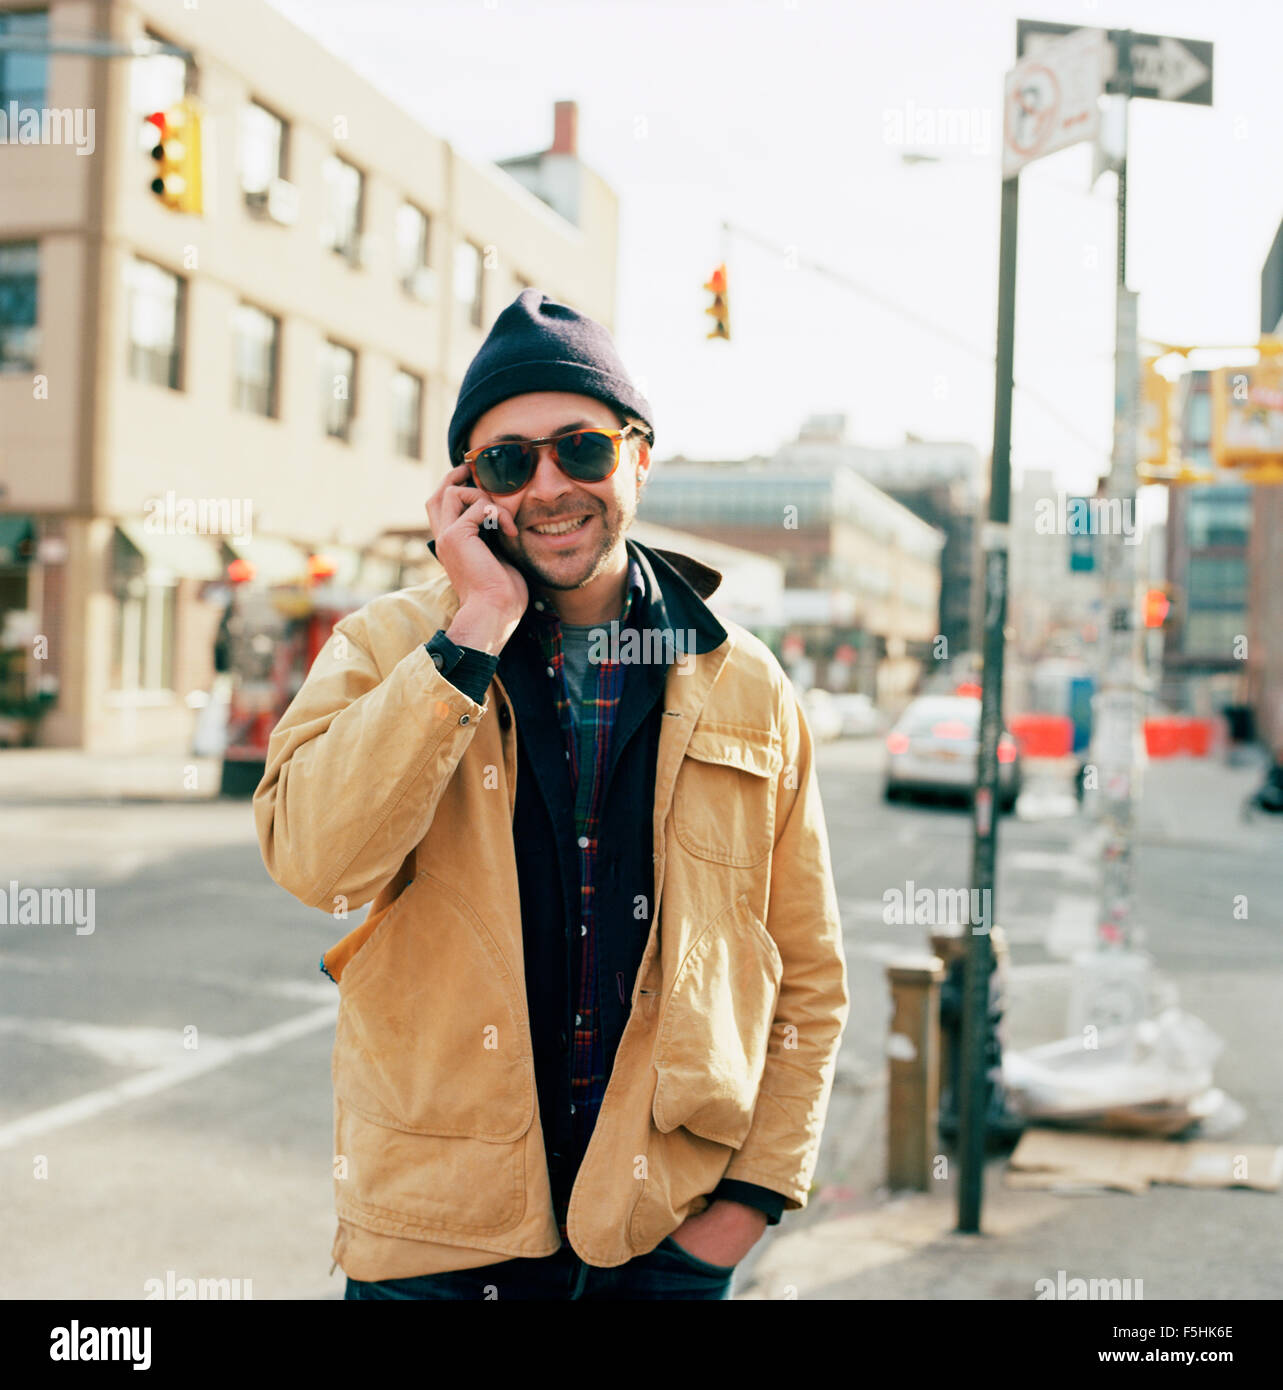 USA, New York State, New York City, Brooklyn, Portrait of man using mobile phone - Stock Image